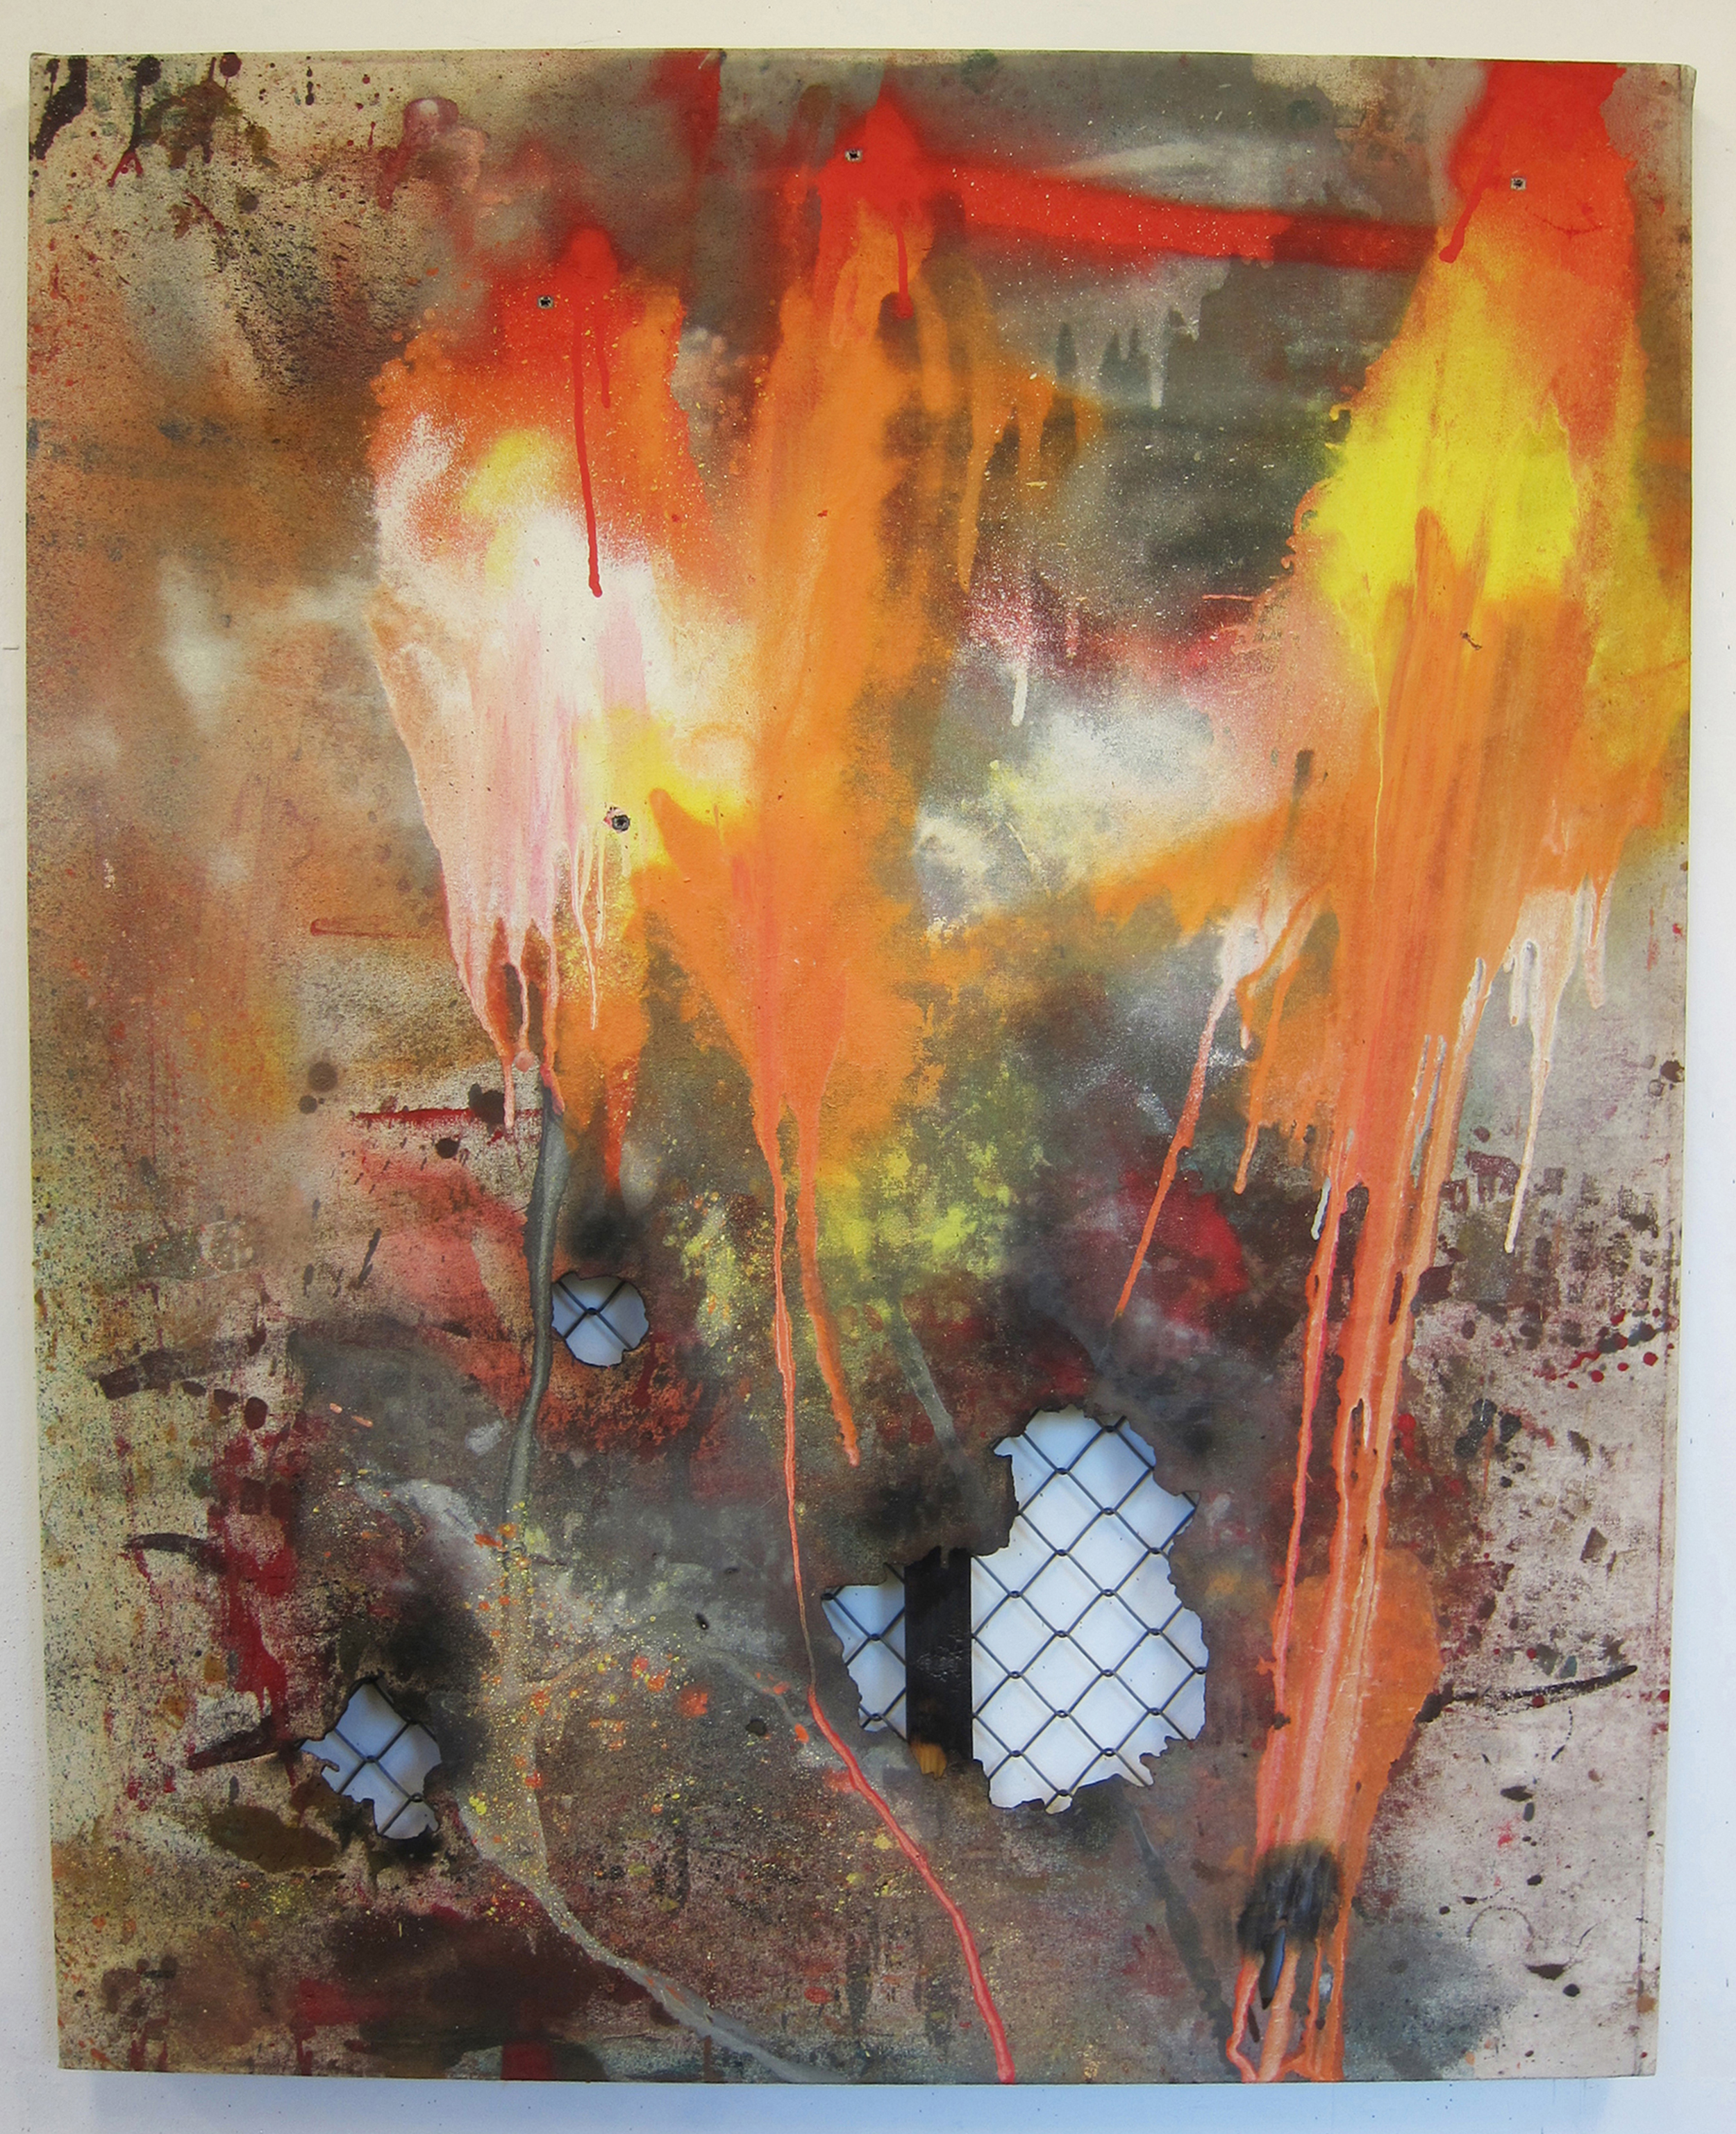 Vandal Vernacular.   Oil, alkyd resin, fire, fence, rain, canvas and shot 4 times with a Marlin Underlever .38 rifle.  130 x 107 cm.  Proof Gallery, London 2015.